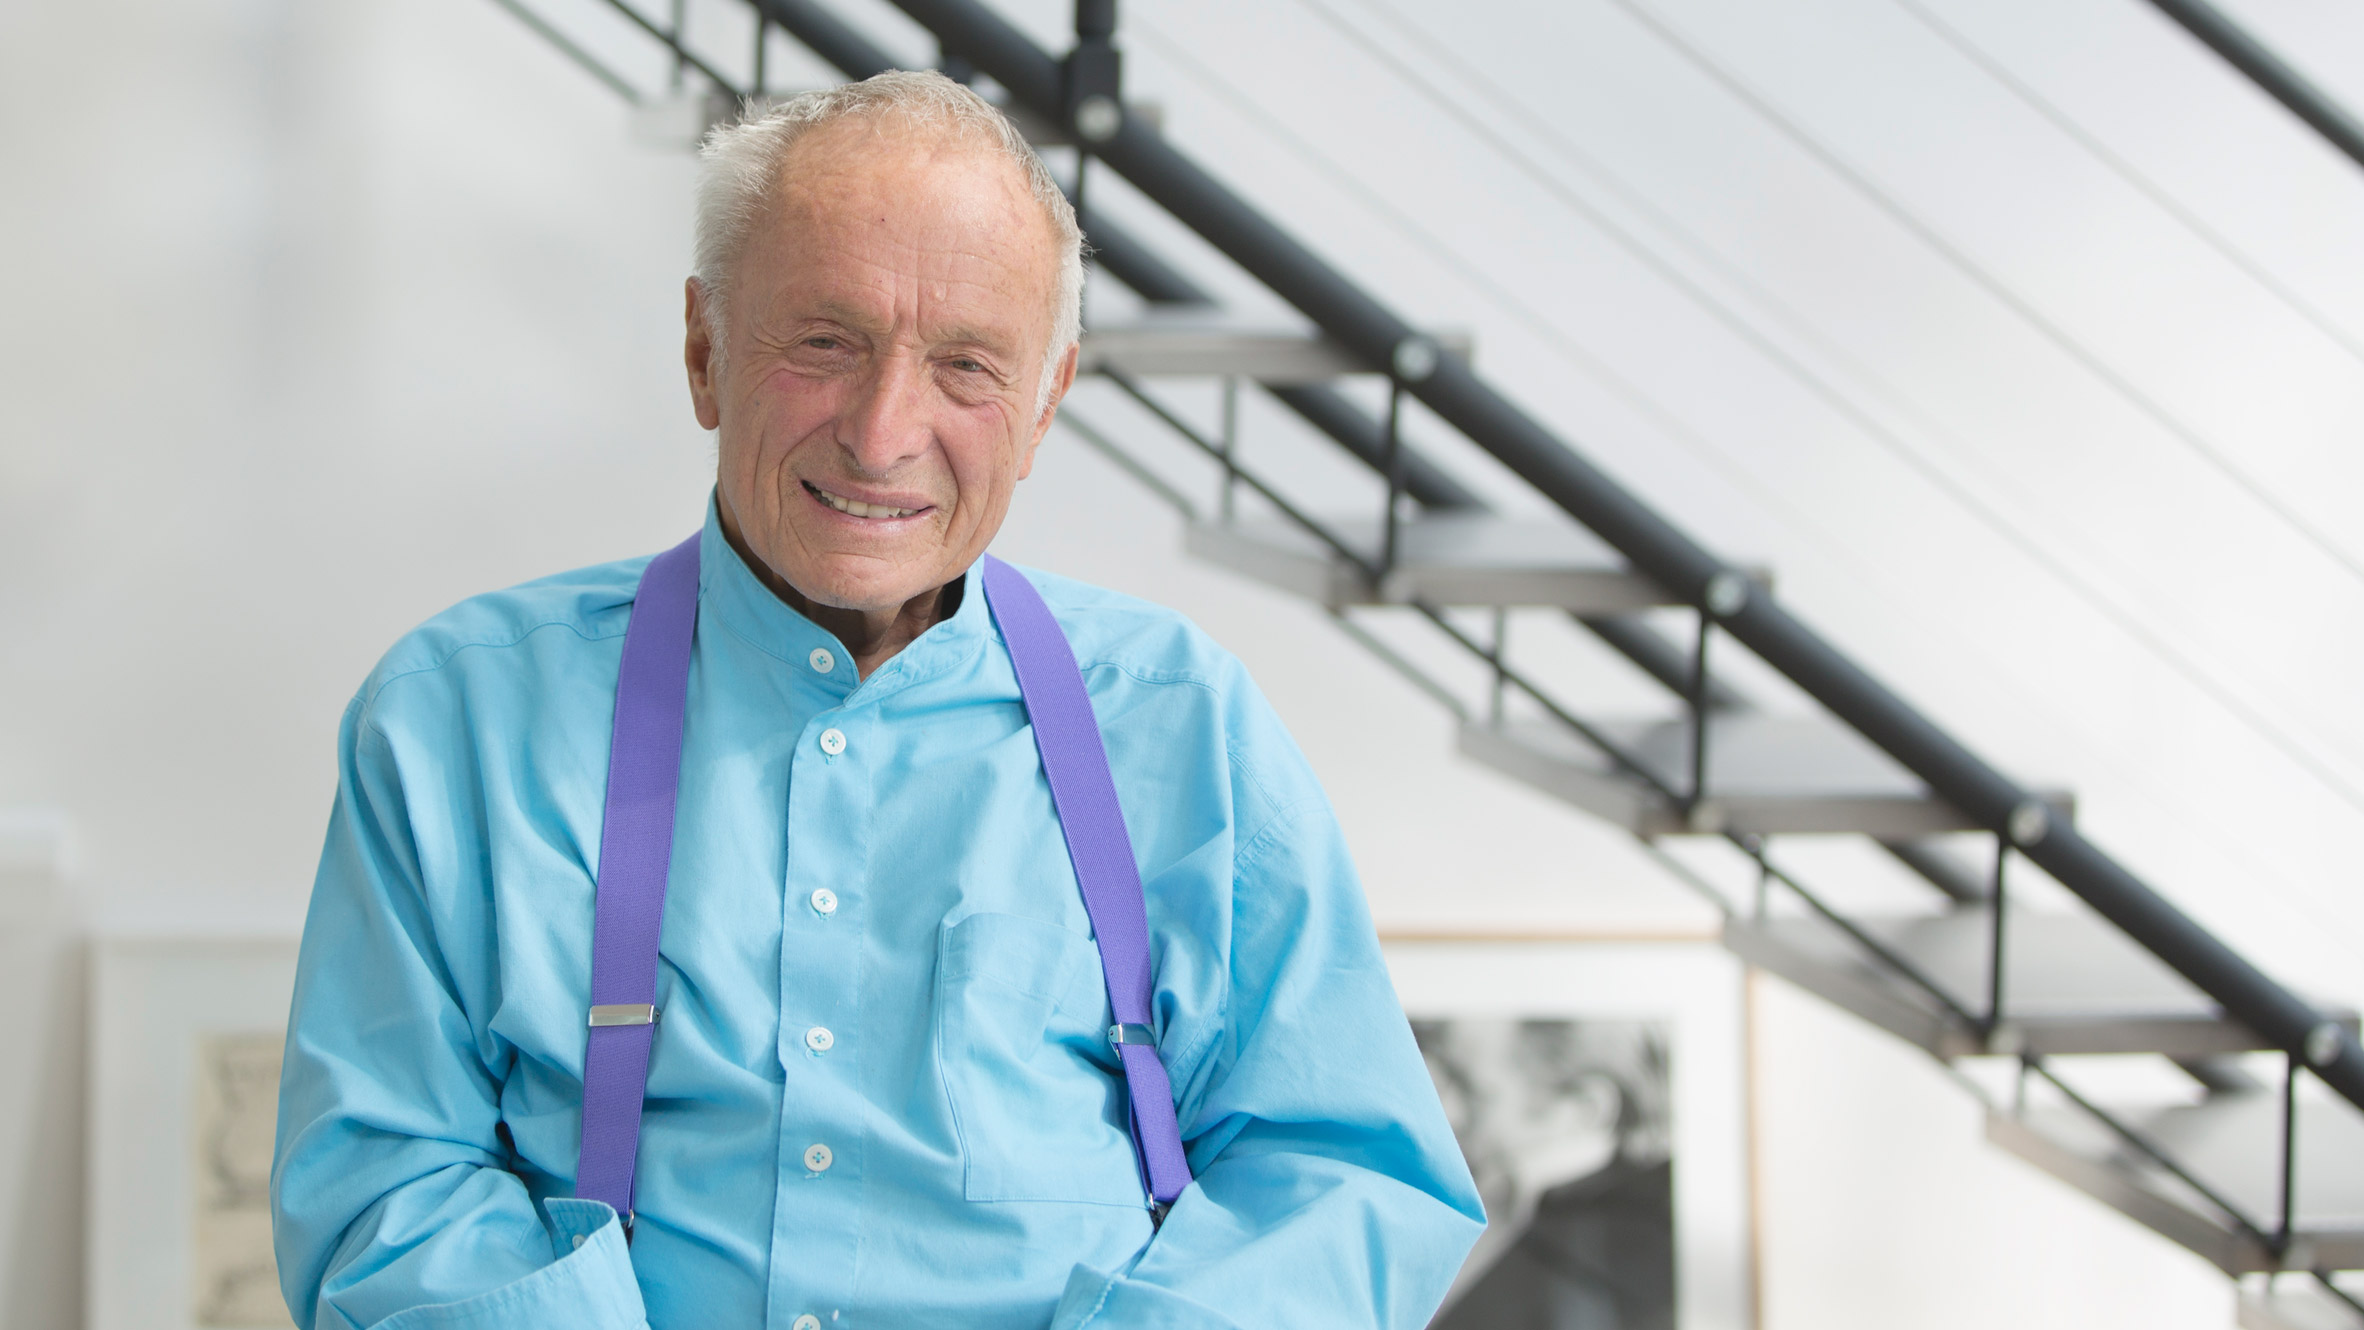 Wimbledon house was meant to solve the British housing problem but didn't, says Richard Rogers